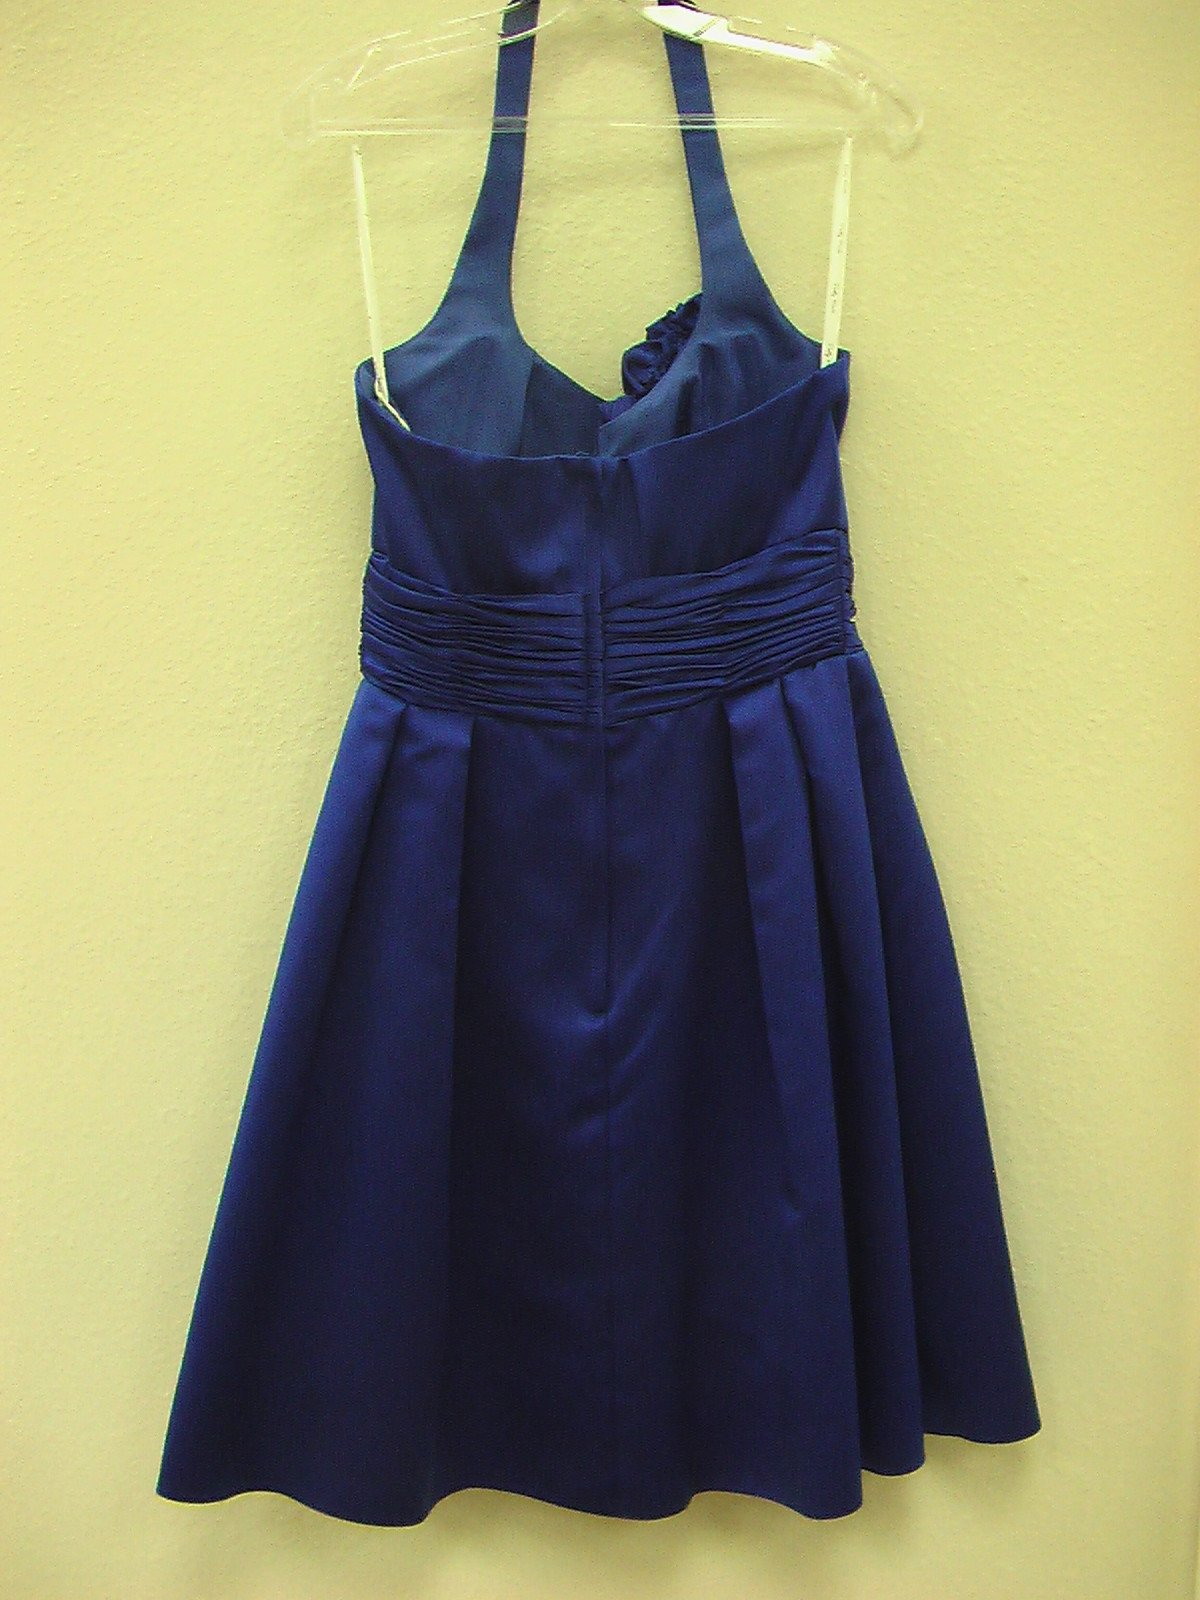 Pretty Maids 22410 Royal size 12 In Stock Bridesmaid Dress - Tom's Bridal